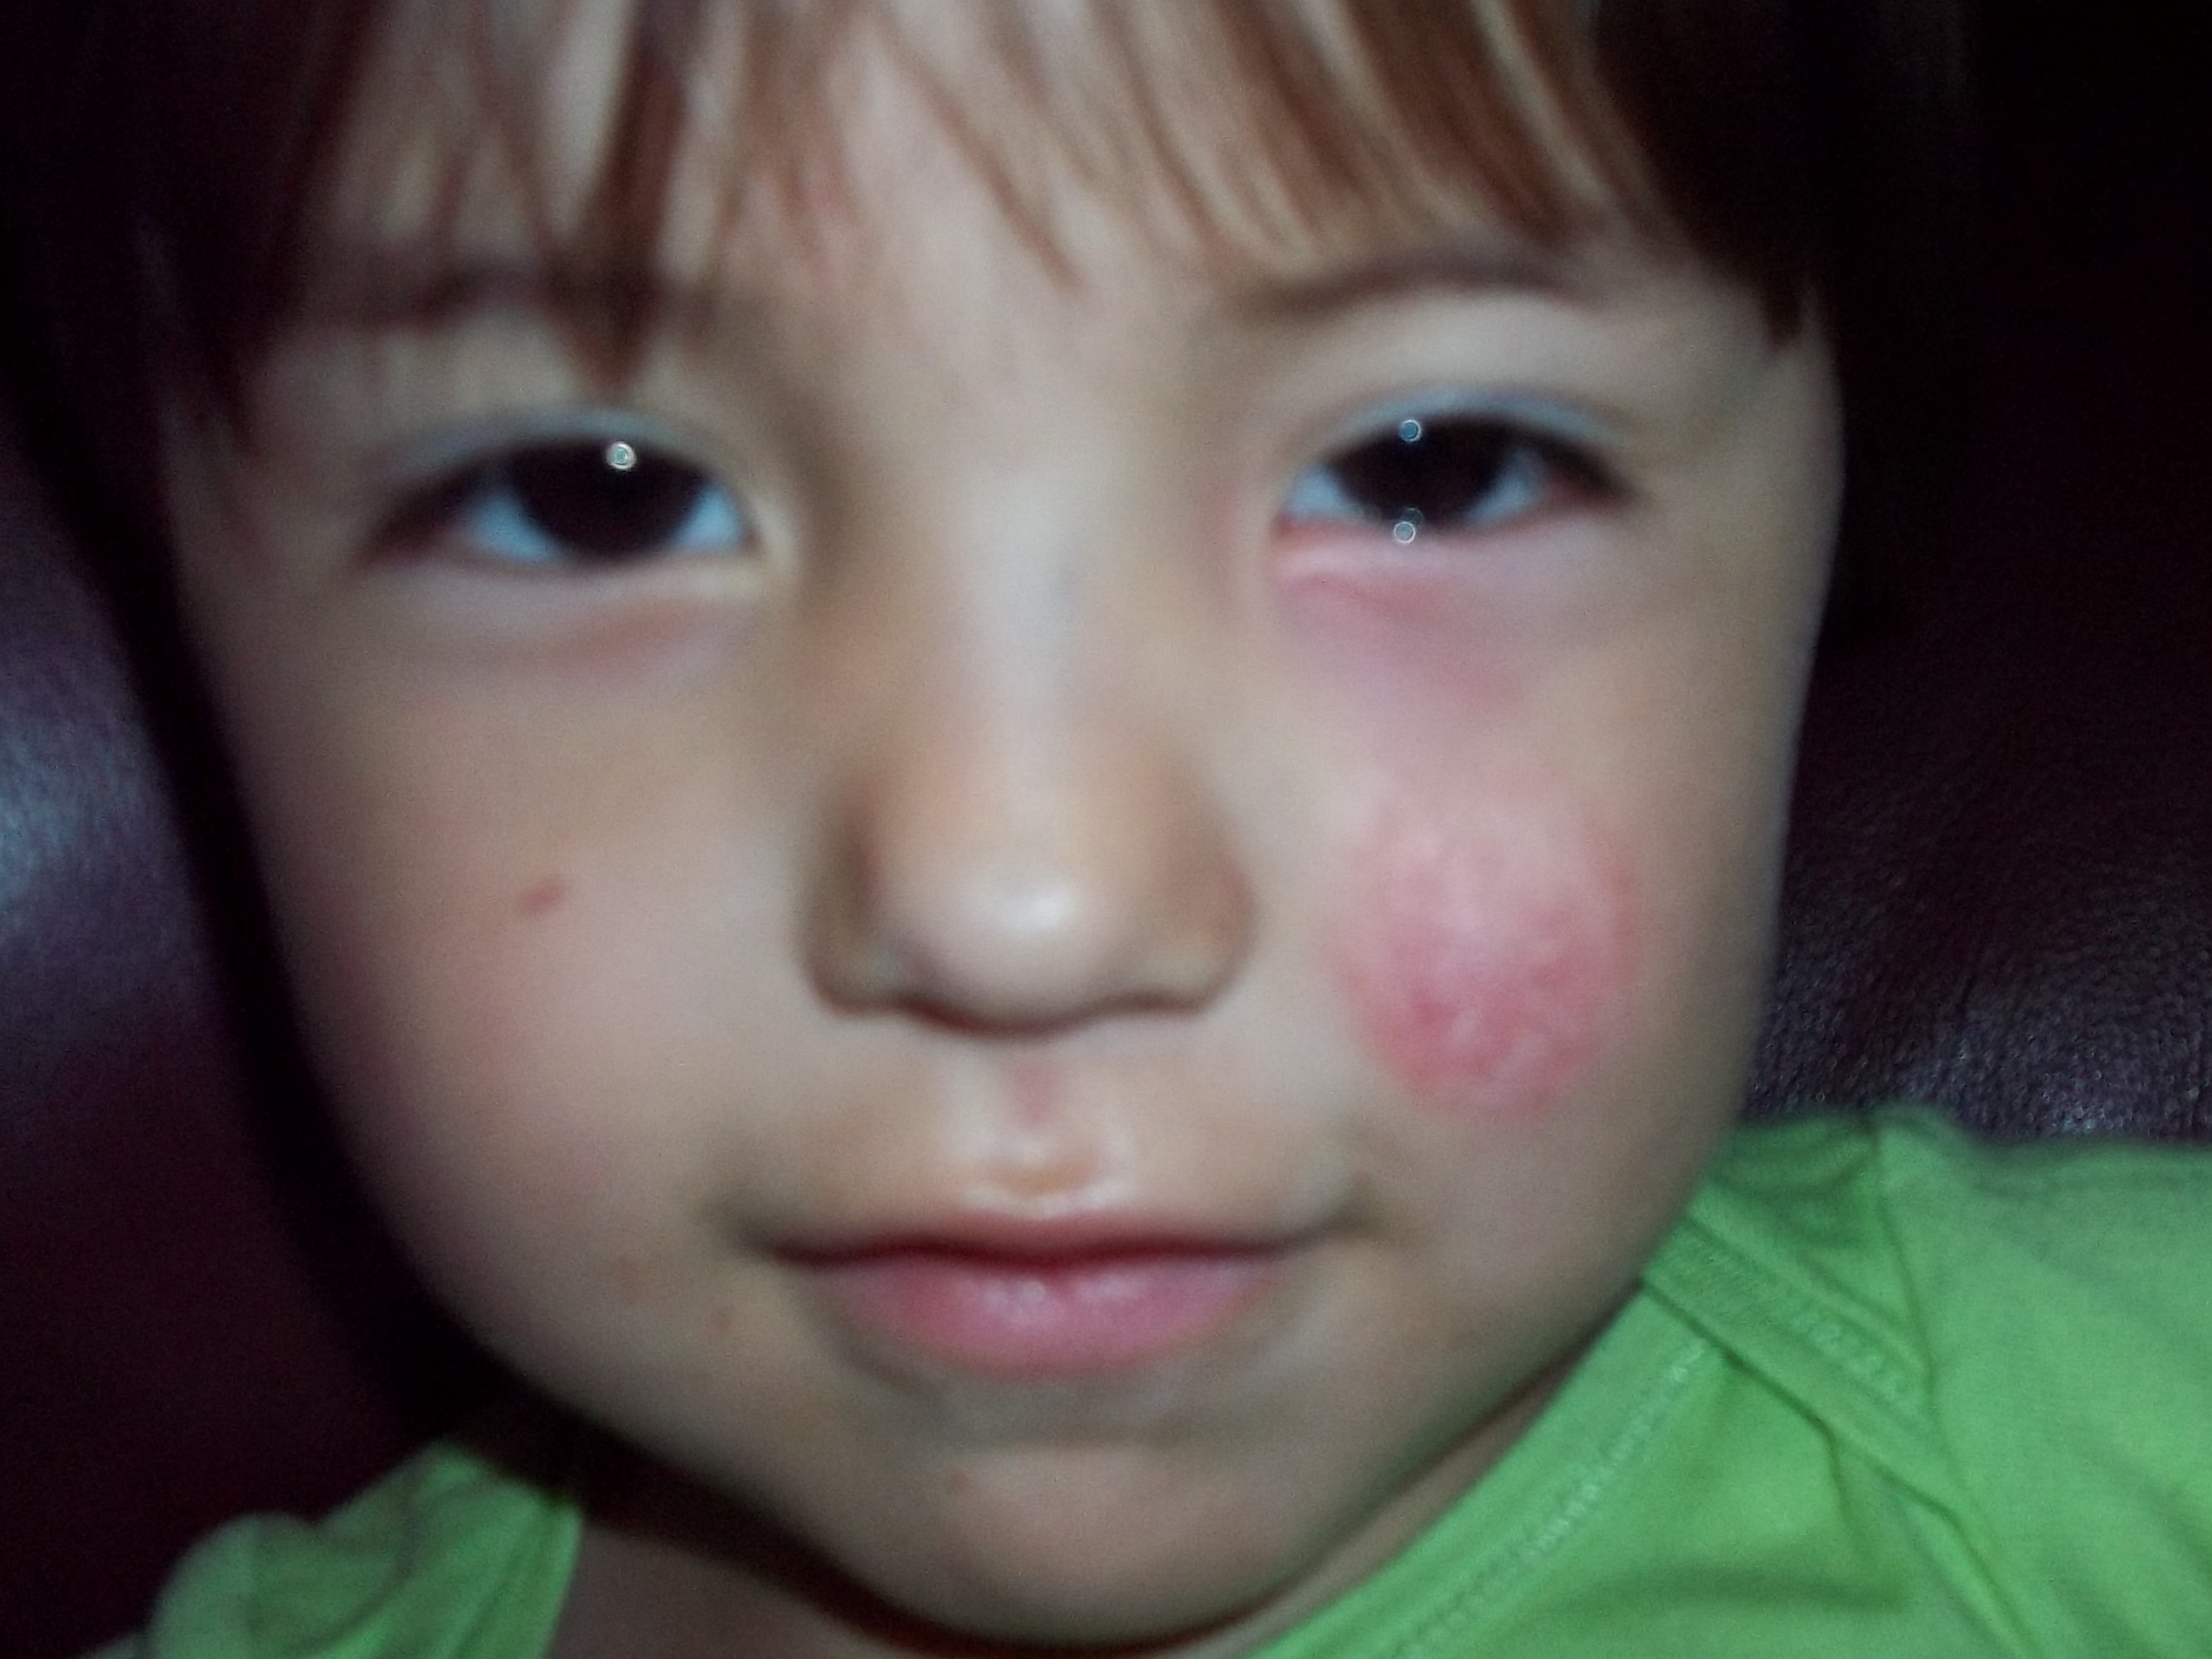 My 2 year old has had a rash on his face for over a month.